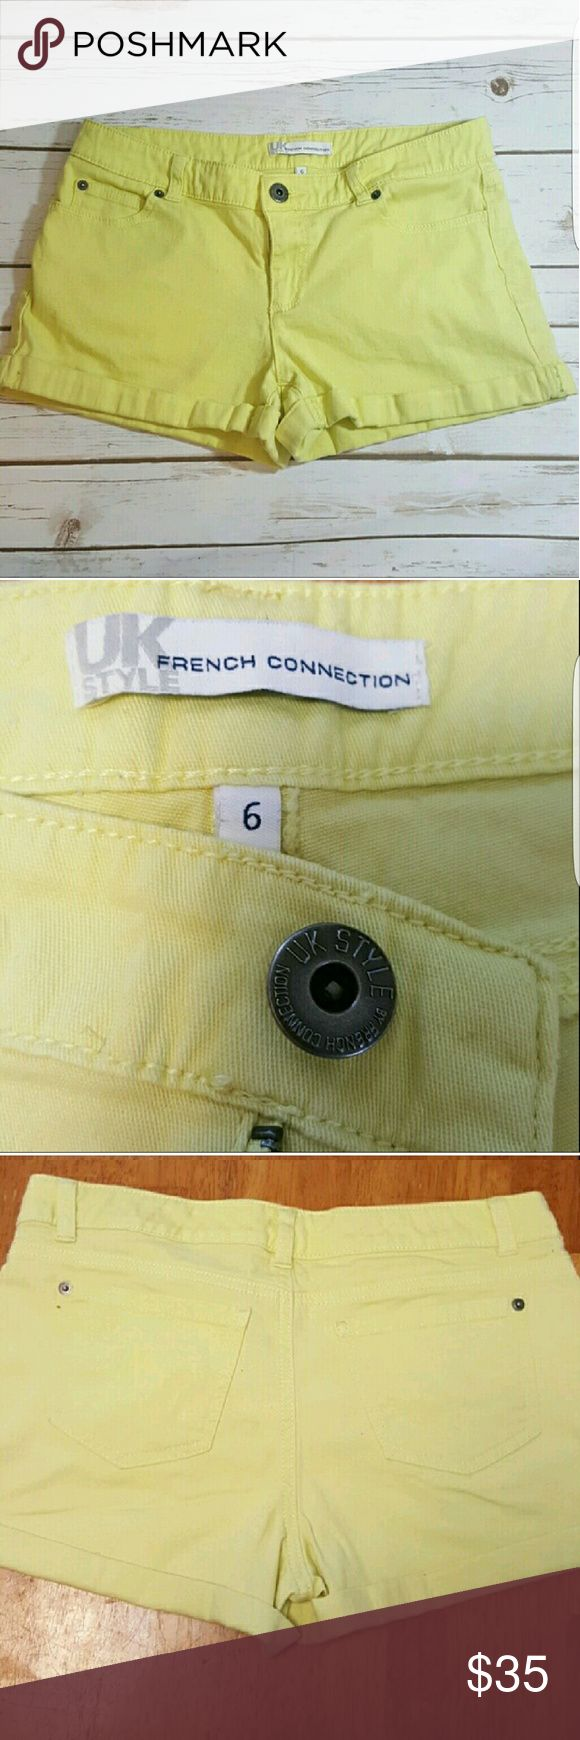 French Connection Citrine shorts Butter soft mellow yellow shorts with folded cuff. 98% cotton, 2% spandex. French Connection Shorts Jean Shorts